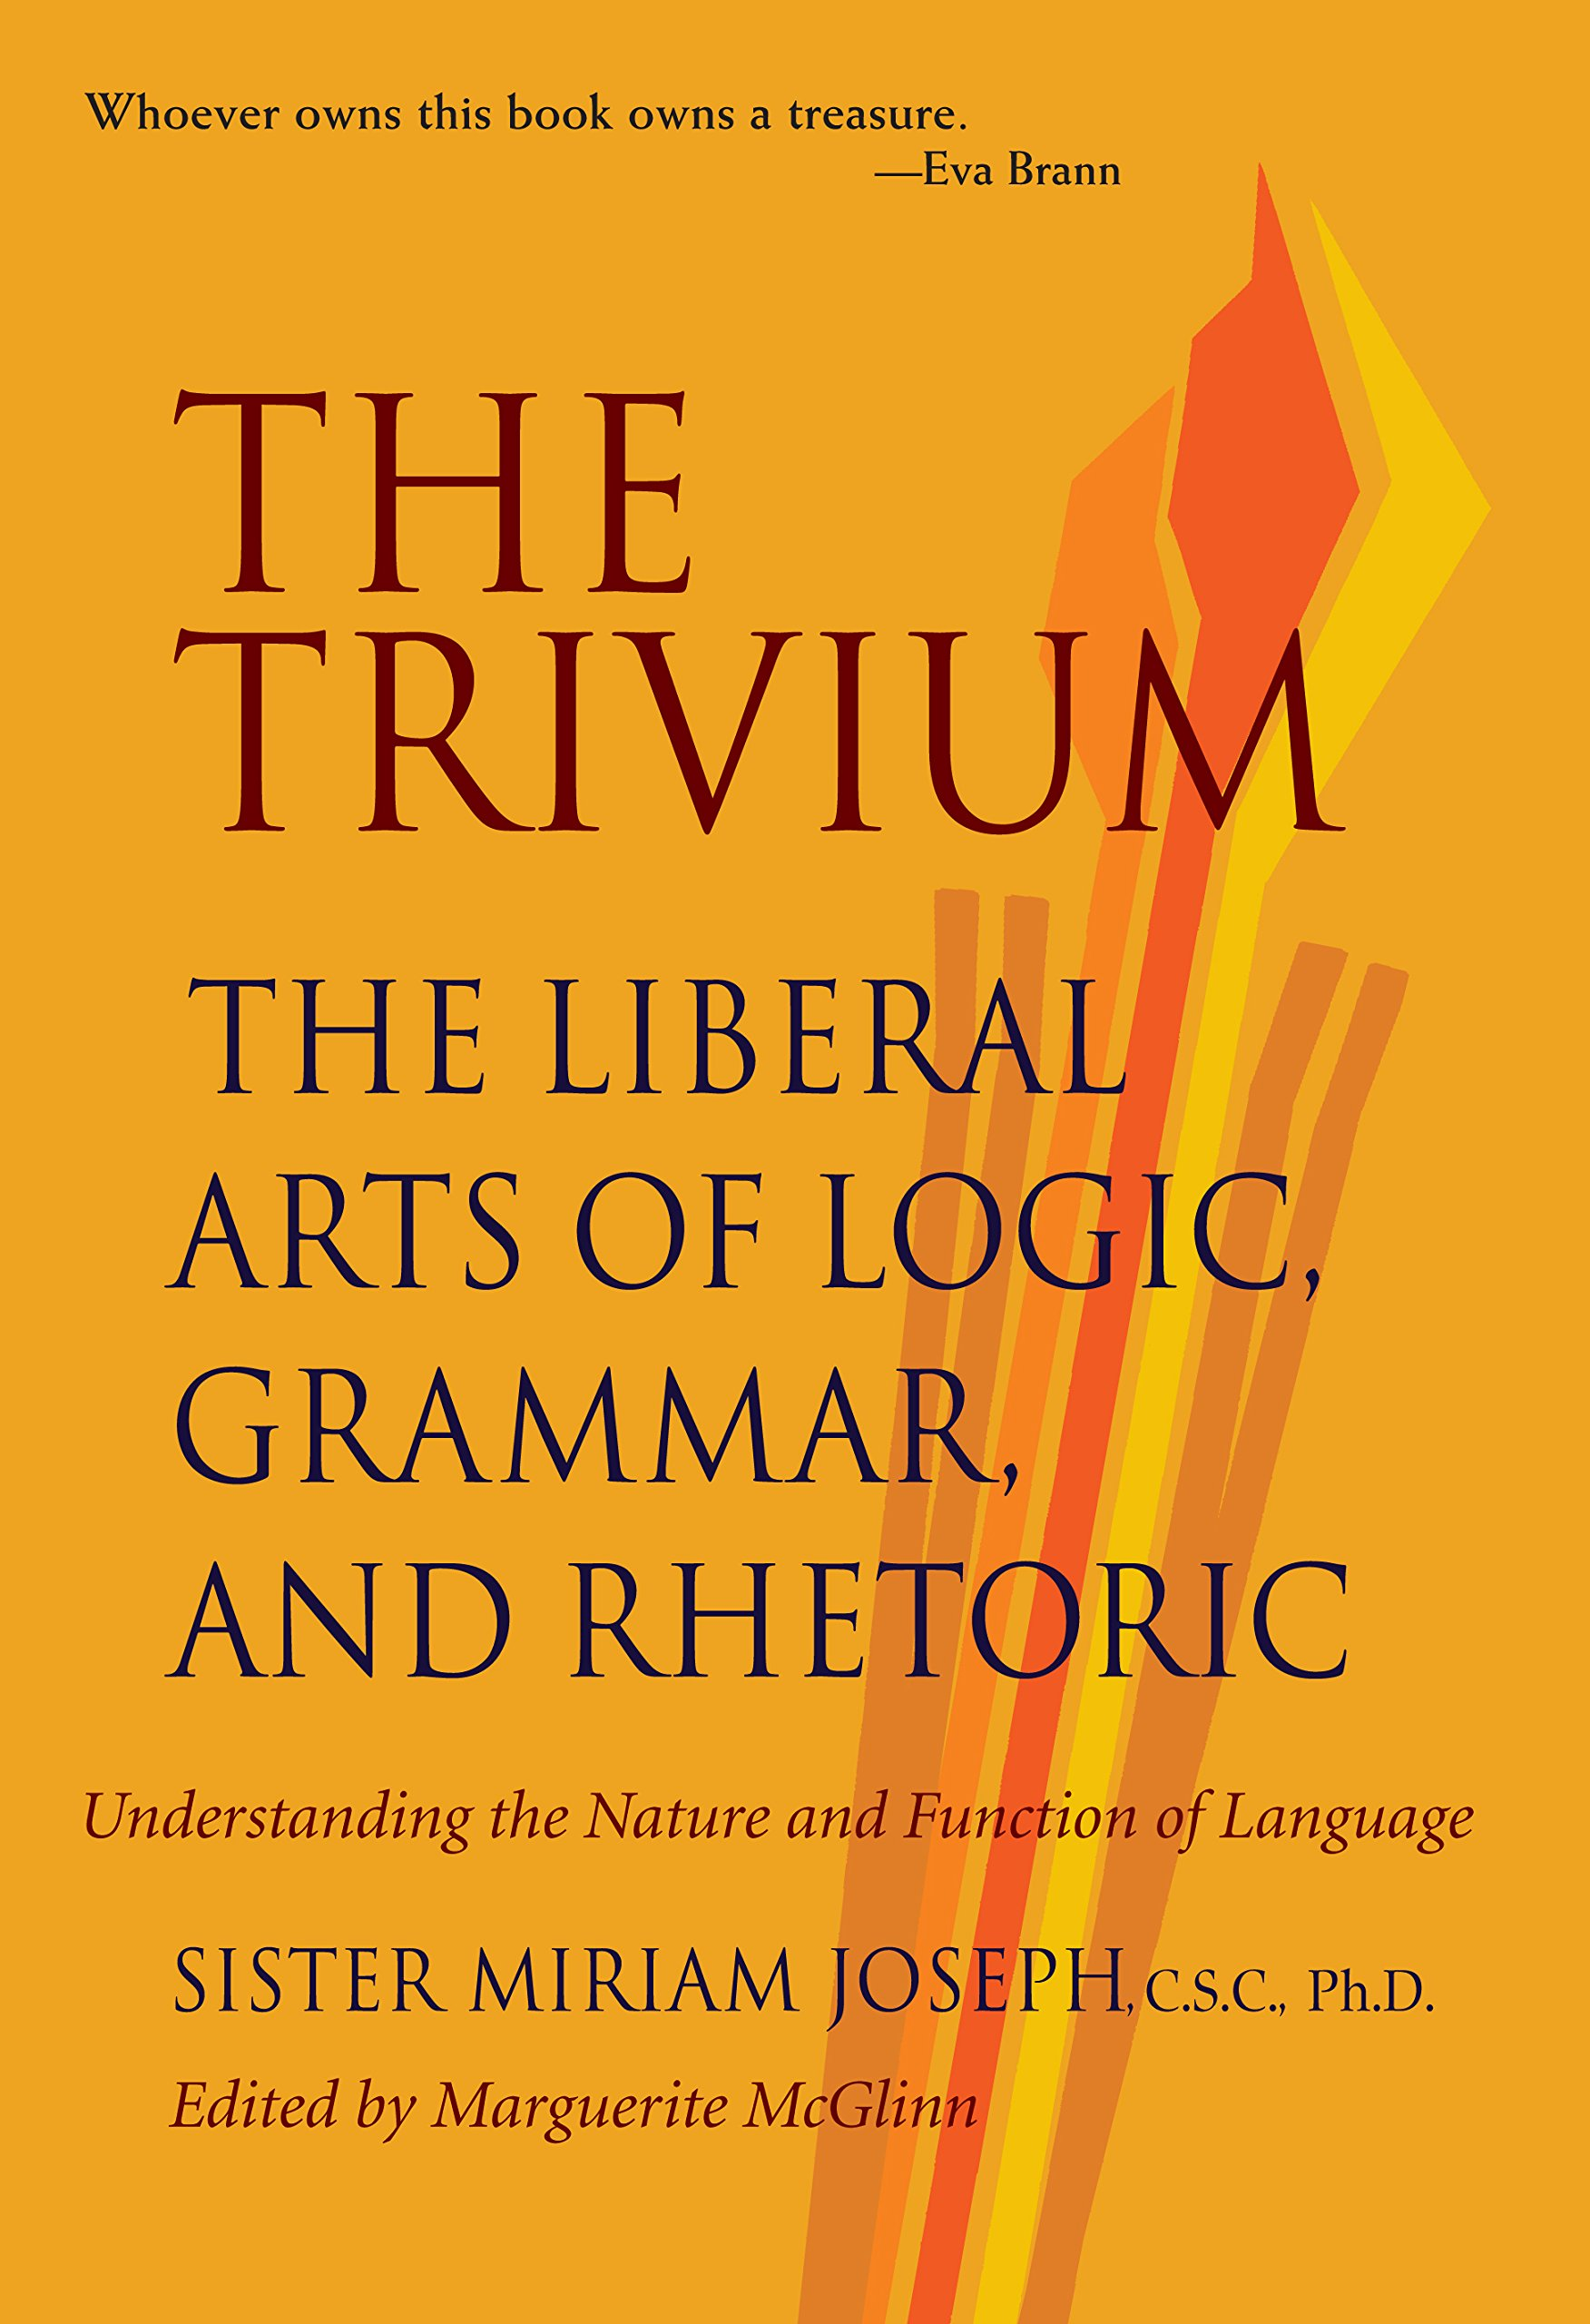 Trivium: The Liberal Arts of Logic, Grammar & Rhetoric: The Liberal Arts of Logic, Grammar and Rhetoric: Amazon.es: Sister Miriam Joseph: Libros en idiomas ...